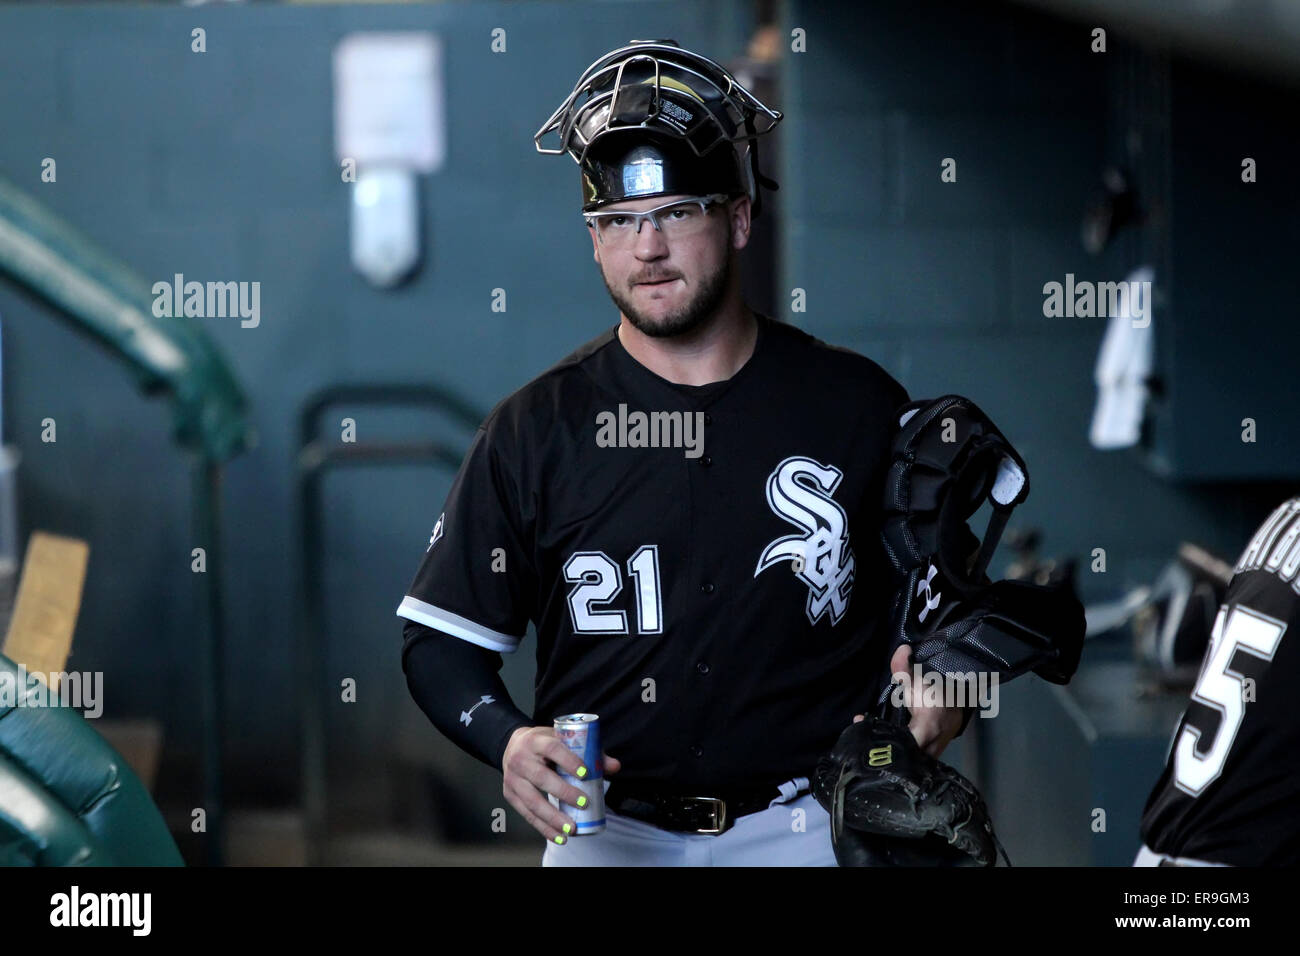 Houston Tx Usa 29th May 2015 Chicago White Sox Catcher Tyler